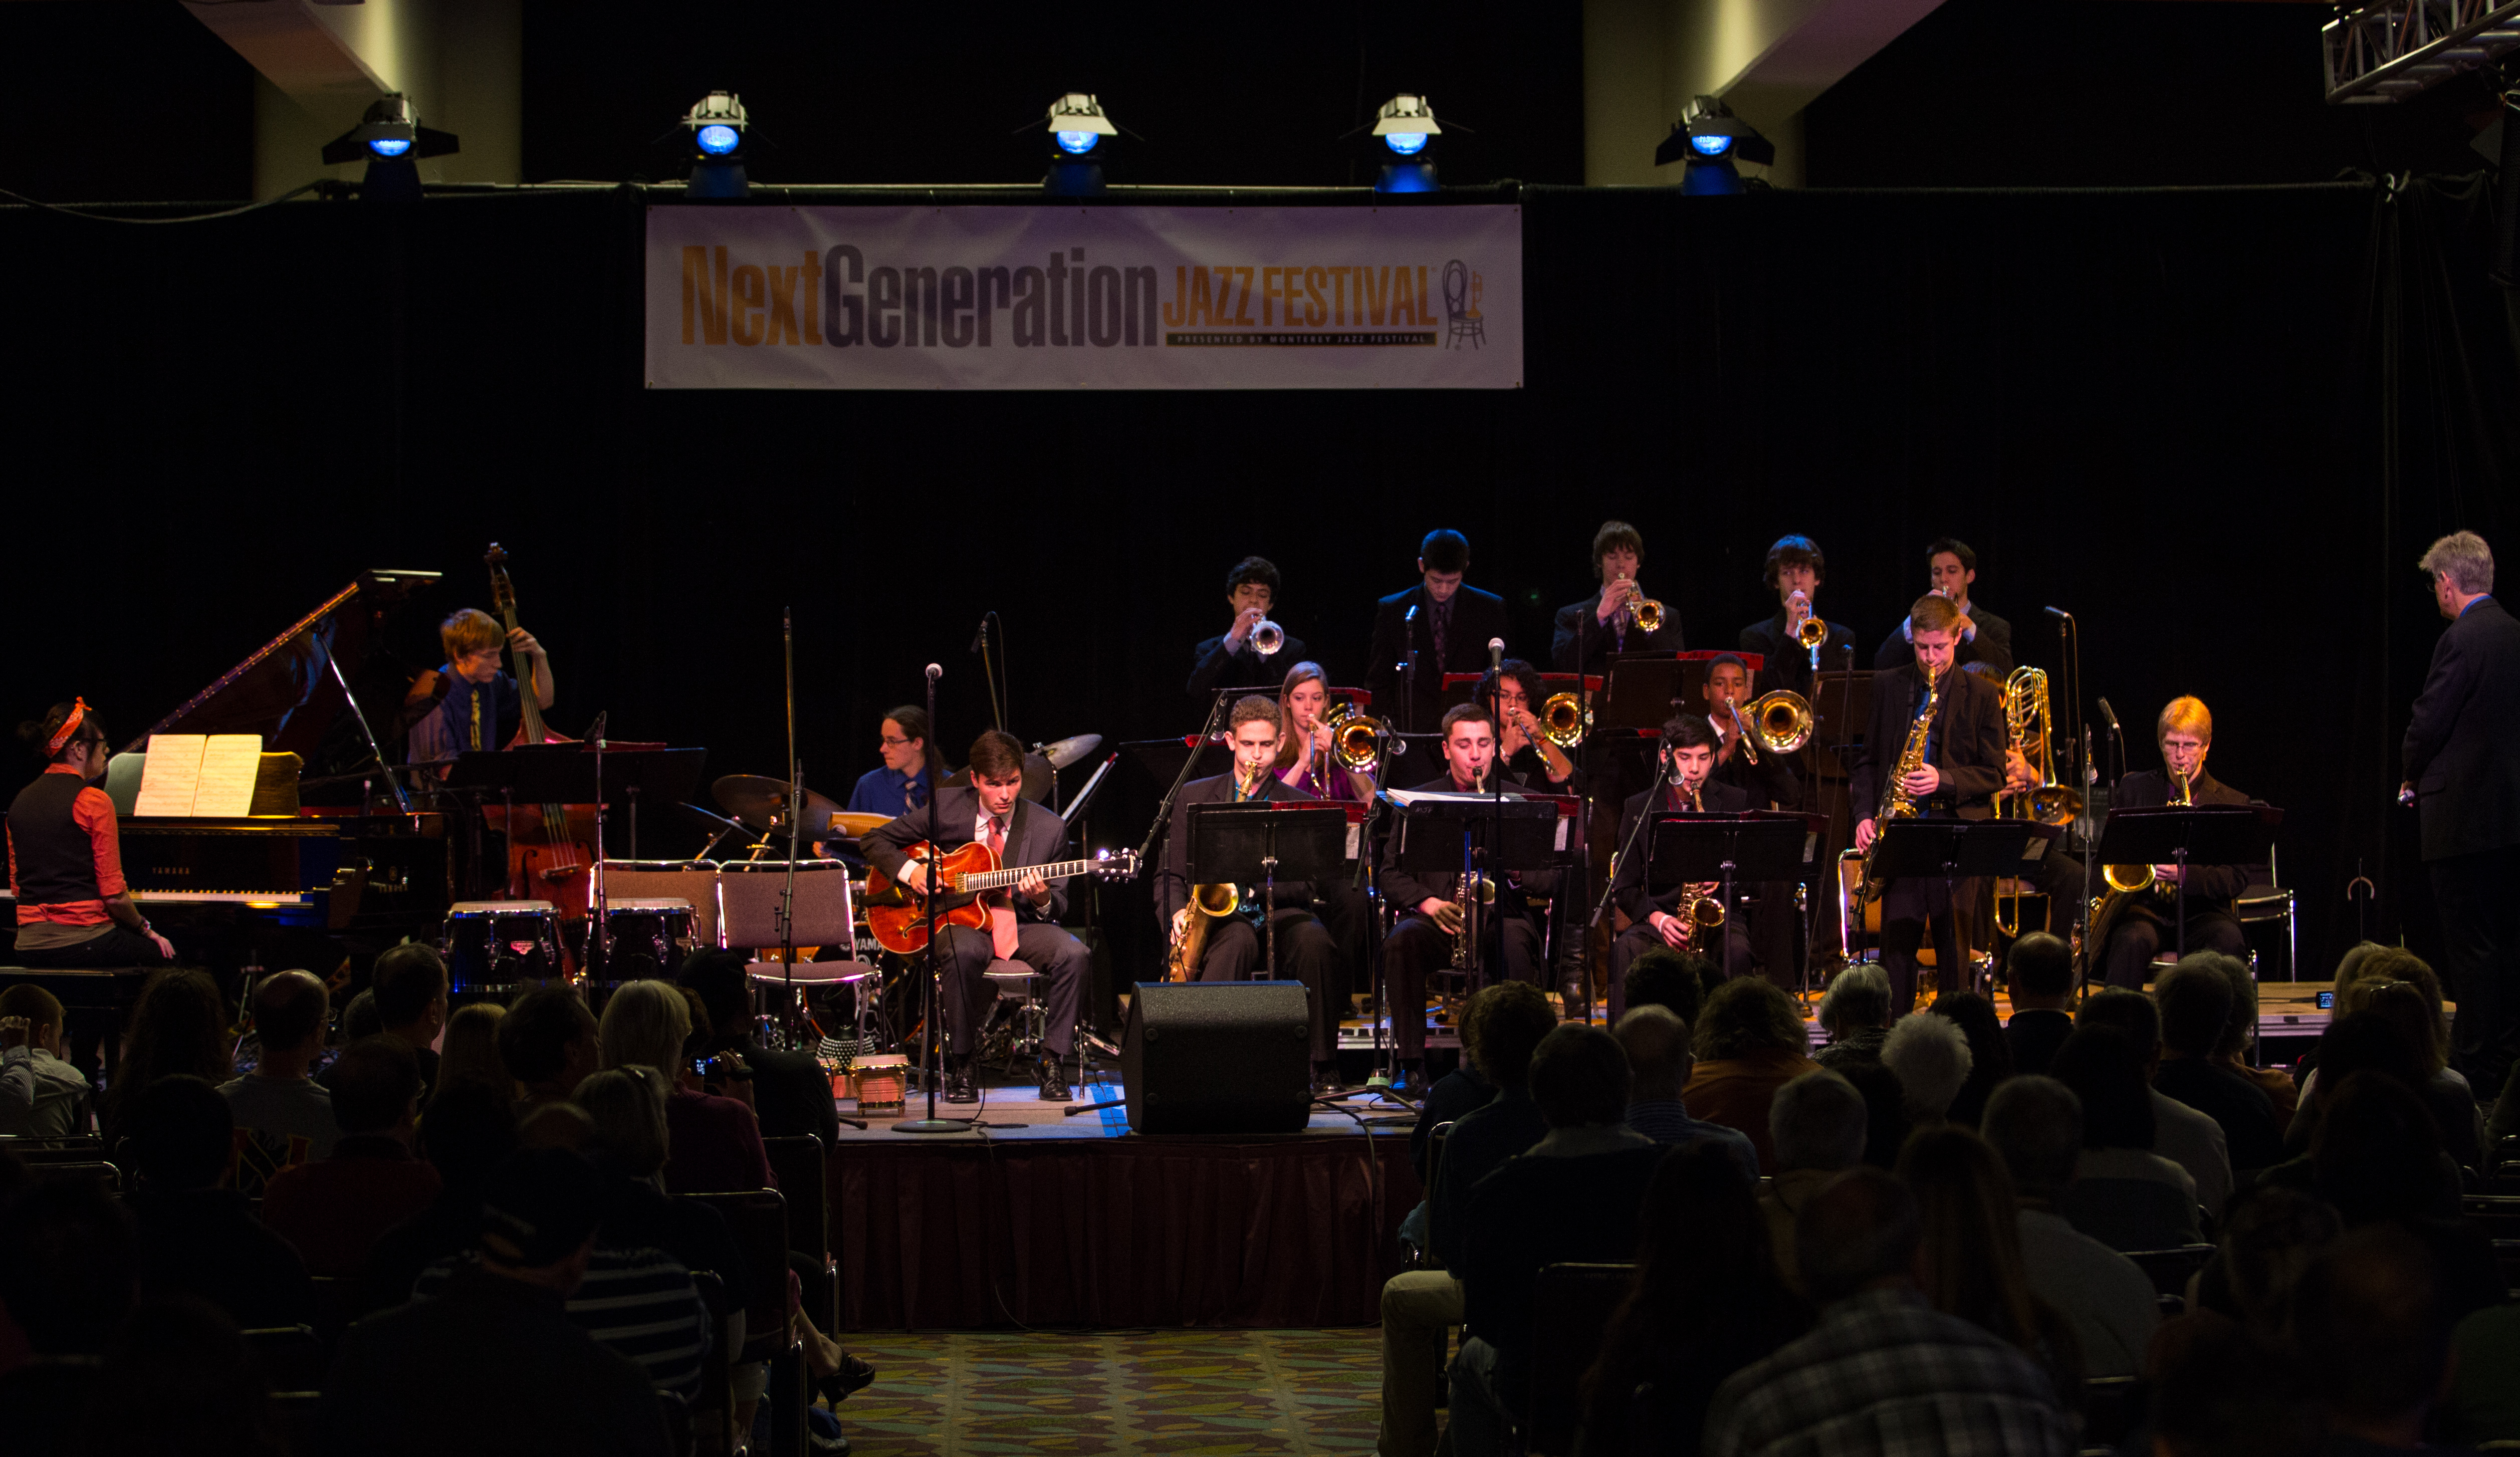 Next Generation Jazz Festival